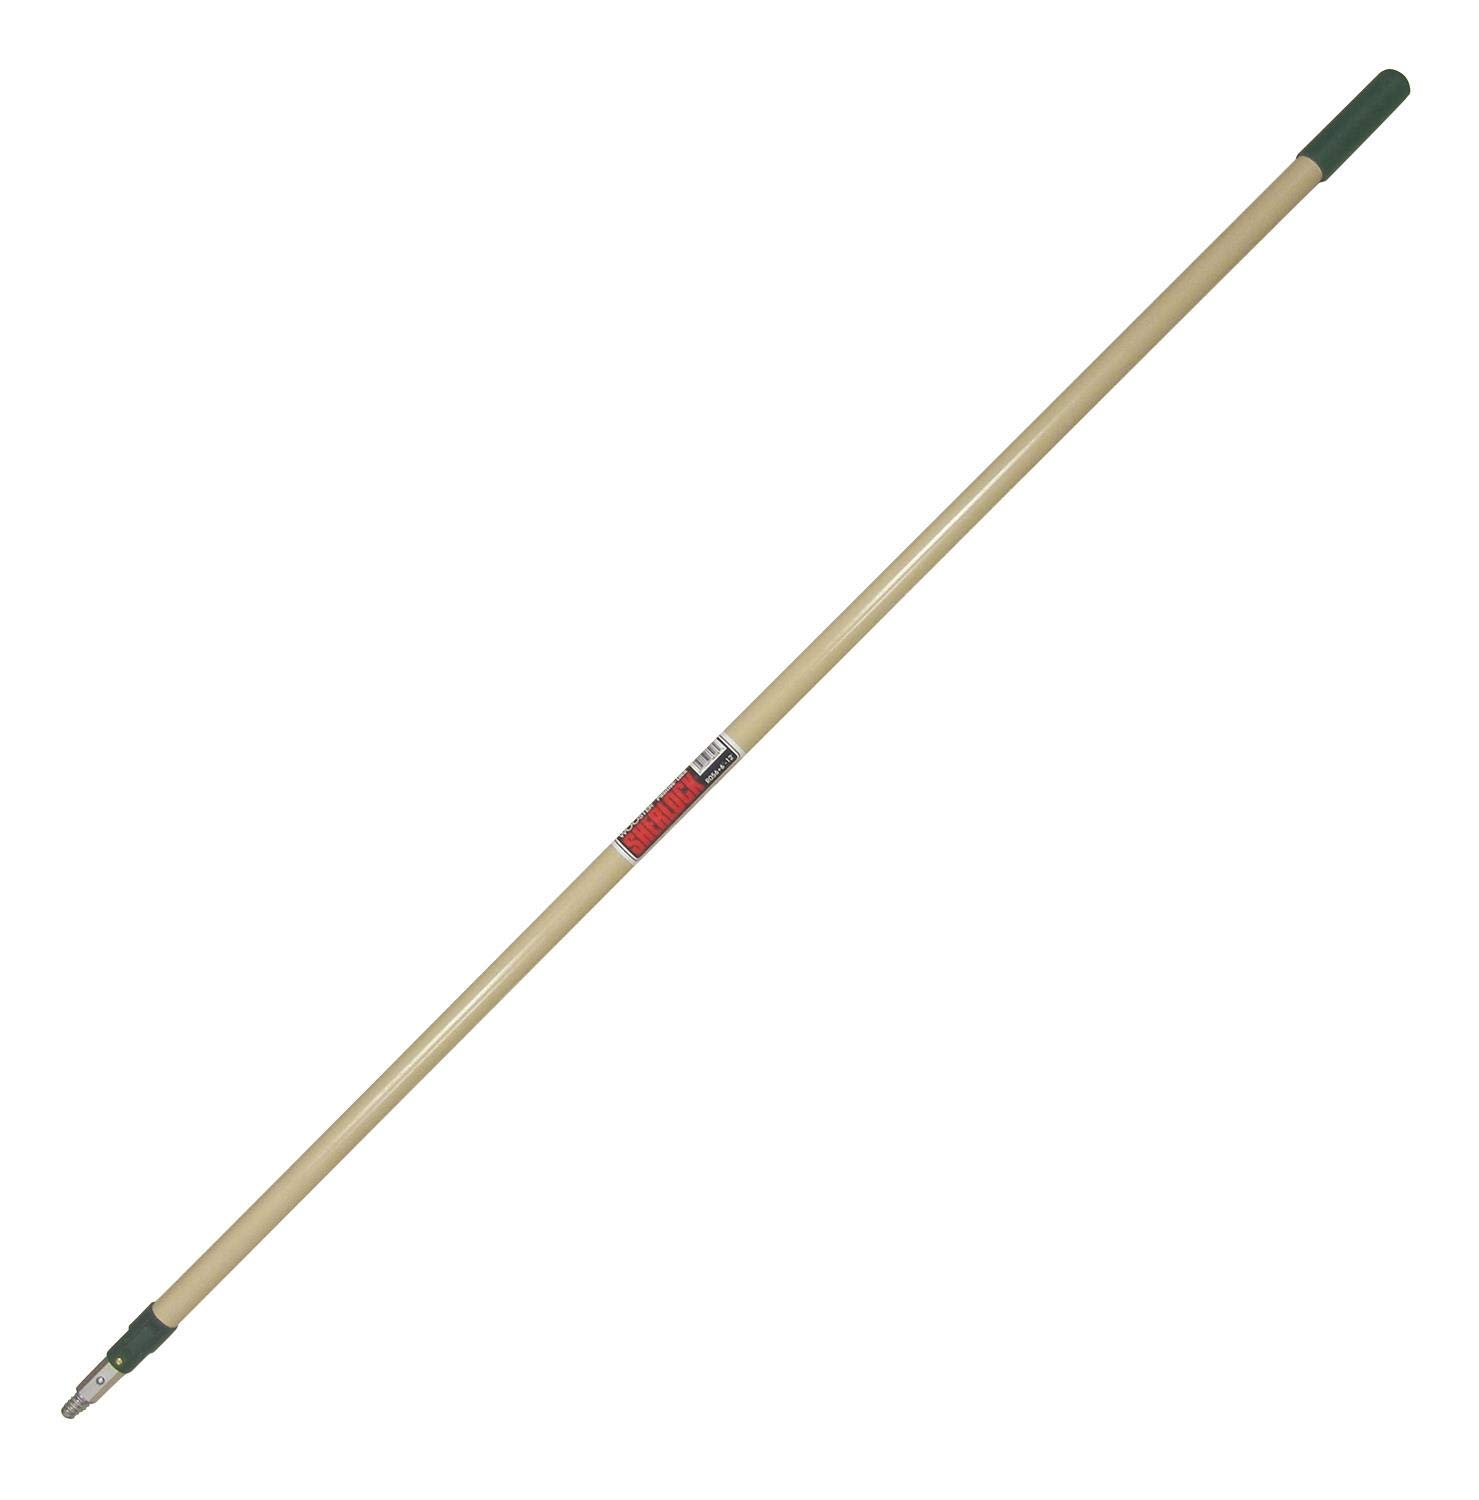 Wooster R056 6' To 12' Wooster Paint Brush Extension Pole by Wooster